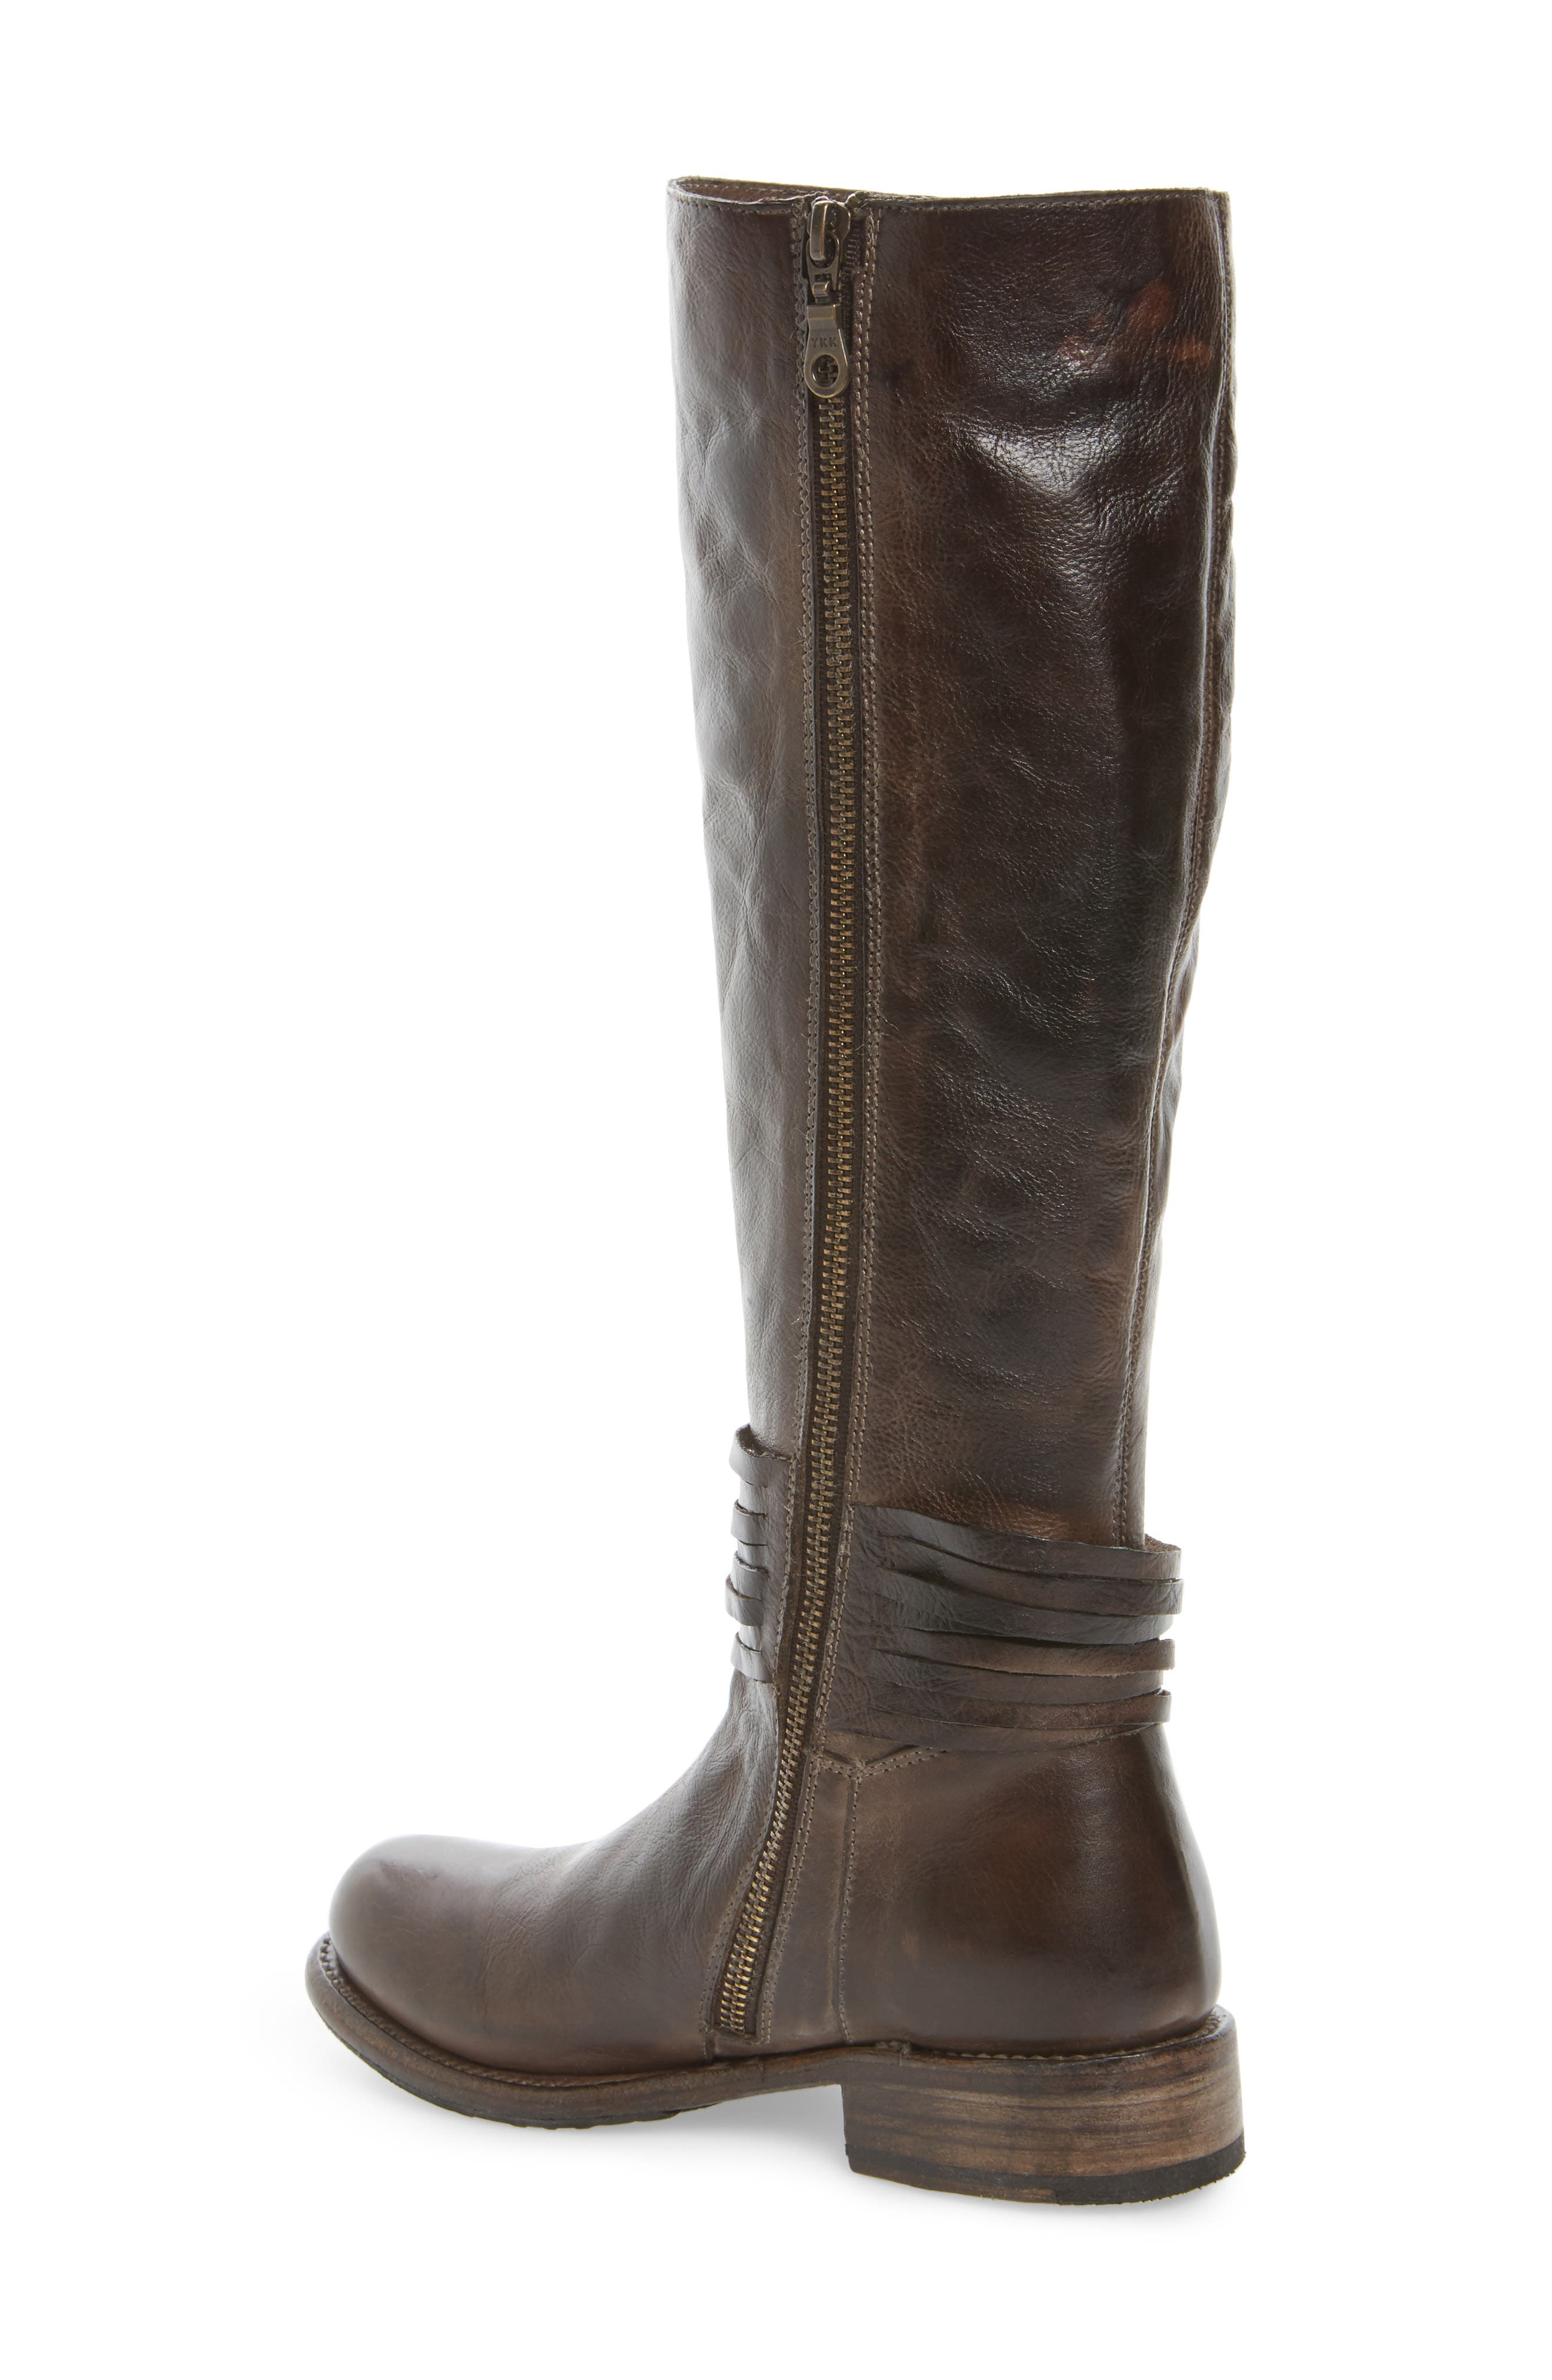 Weymouth Knee High Boot,                             Alternate thumbnail 2, color,                             200